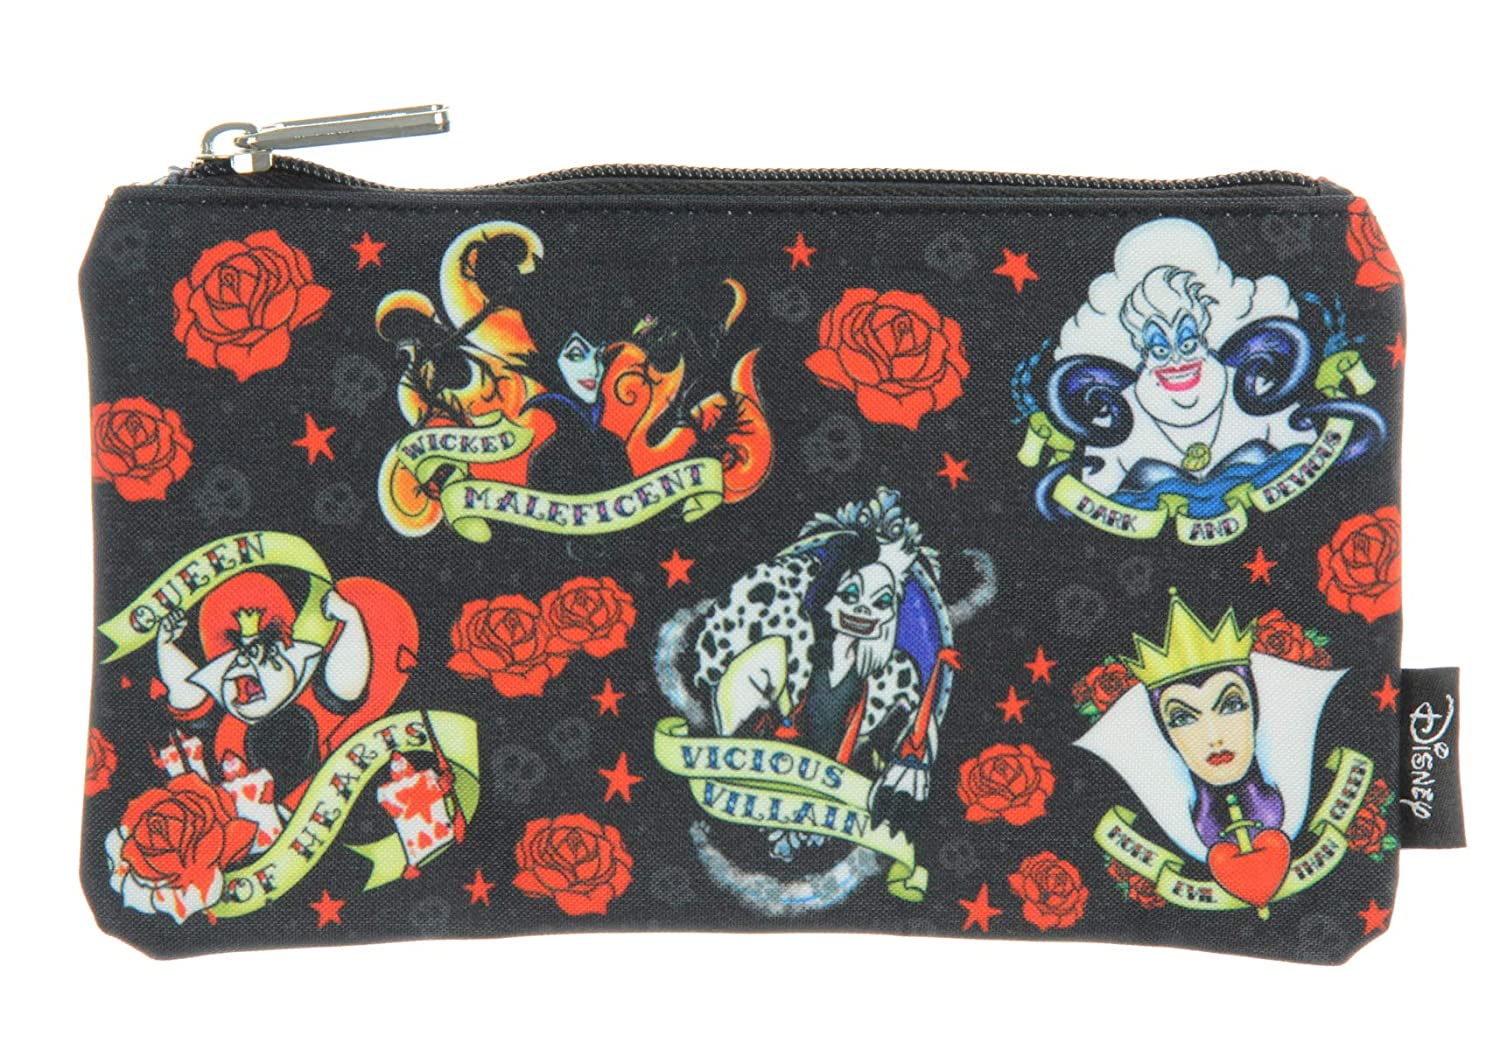 Loungefly Disney Villains Tattoo Allover Print School Pencil Case